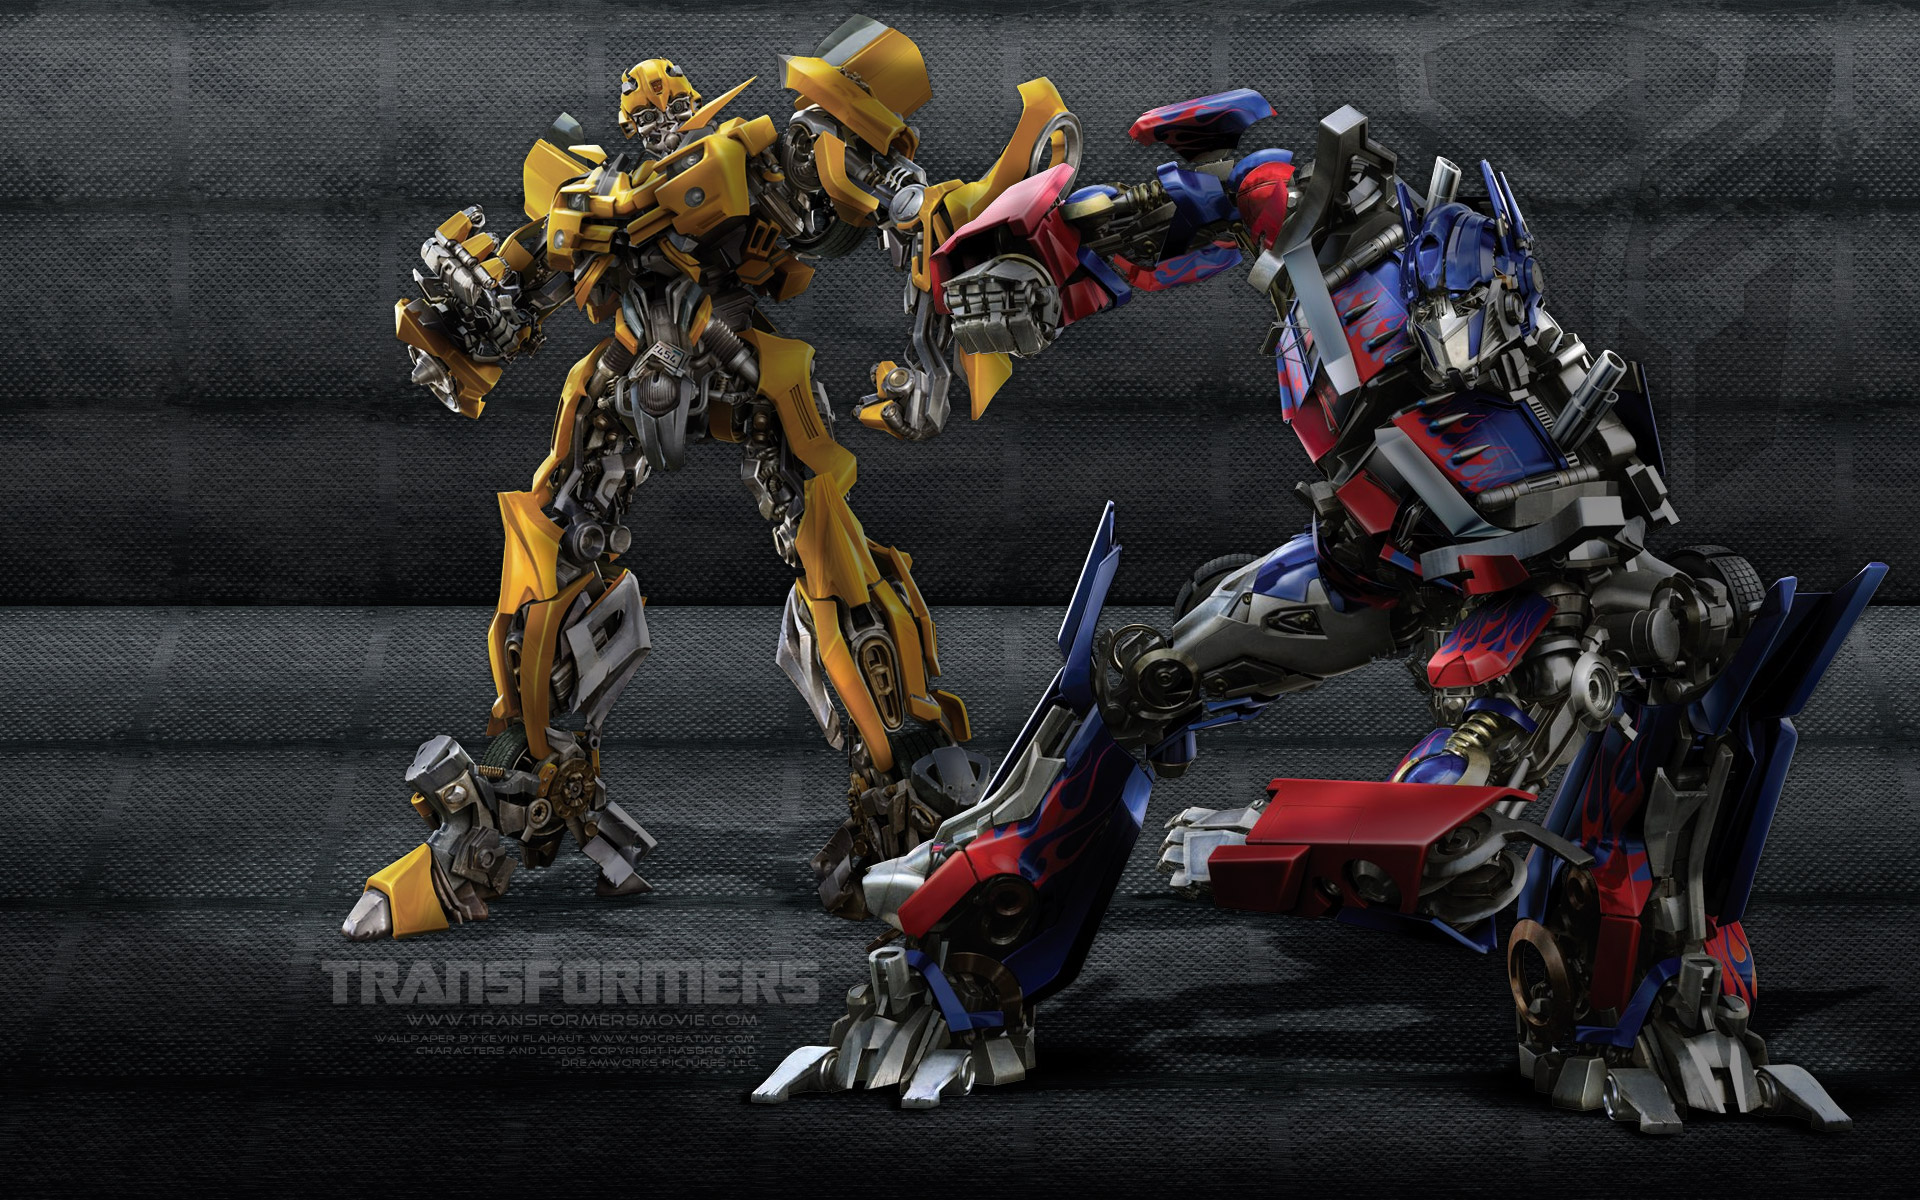 Transformers Ultimate Collection Screensavers Wallpapers Videos 1920x1200